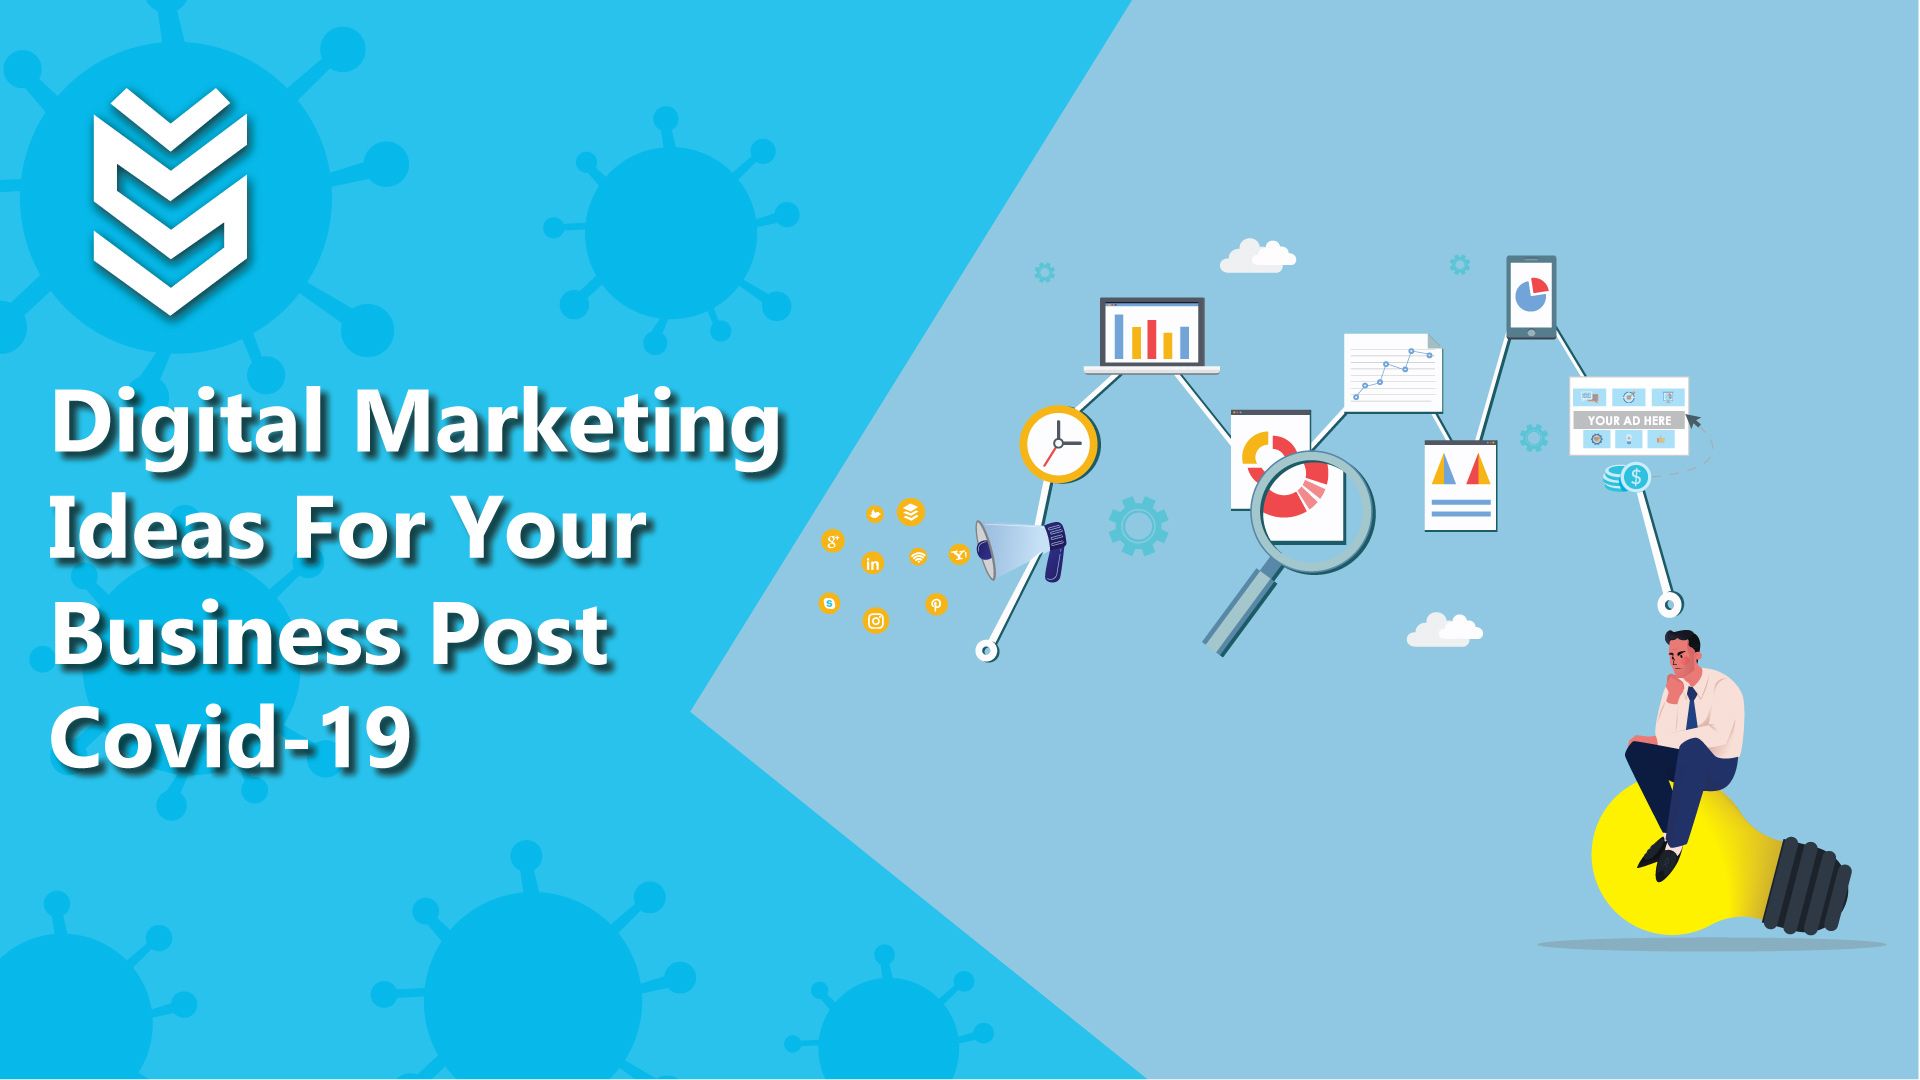 Digital Marketing Ideas for Your Business Post Covid-19